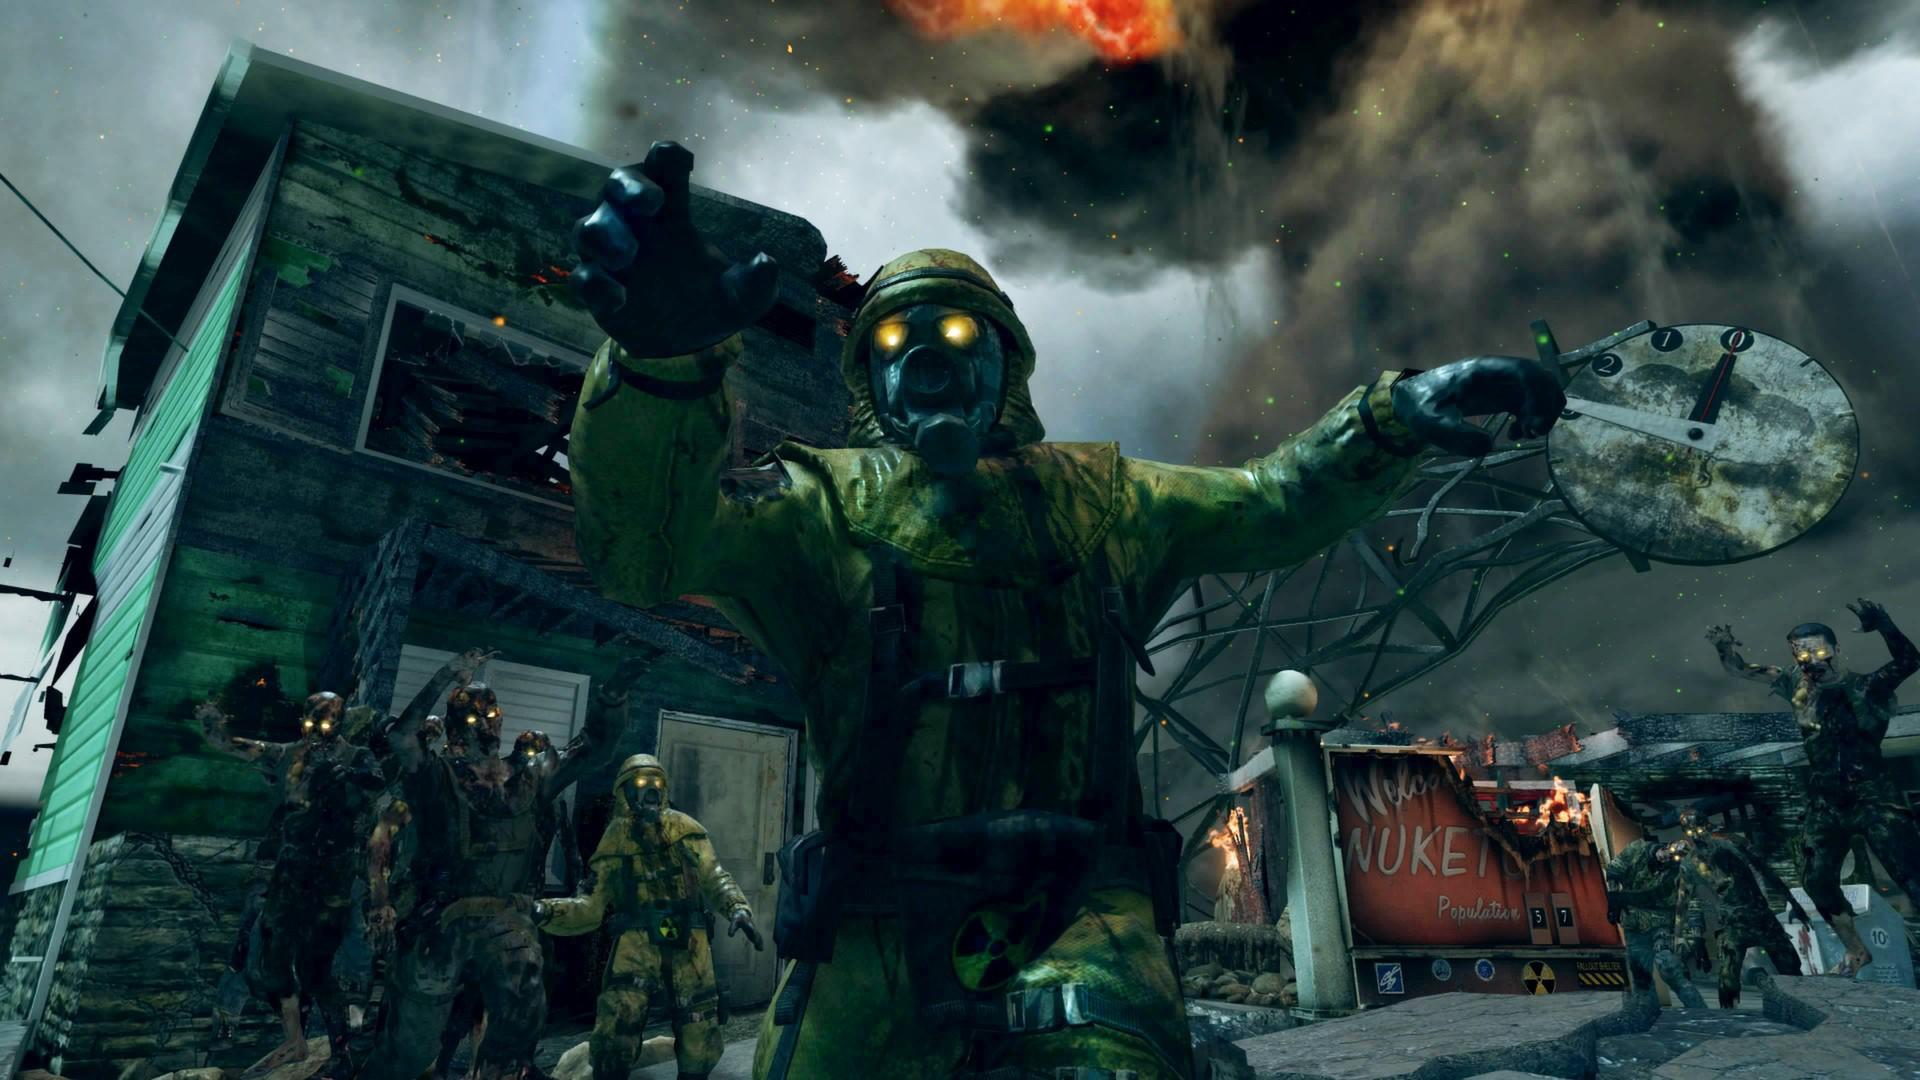 Call of Duty®: Black Ops II - Nuketown Zombies Map bei Steam Black Ops Maps Zombies on